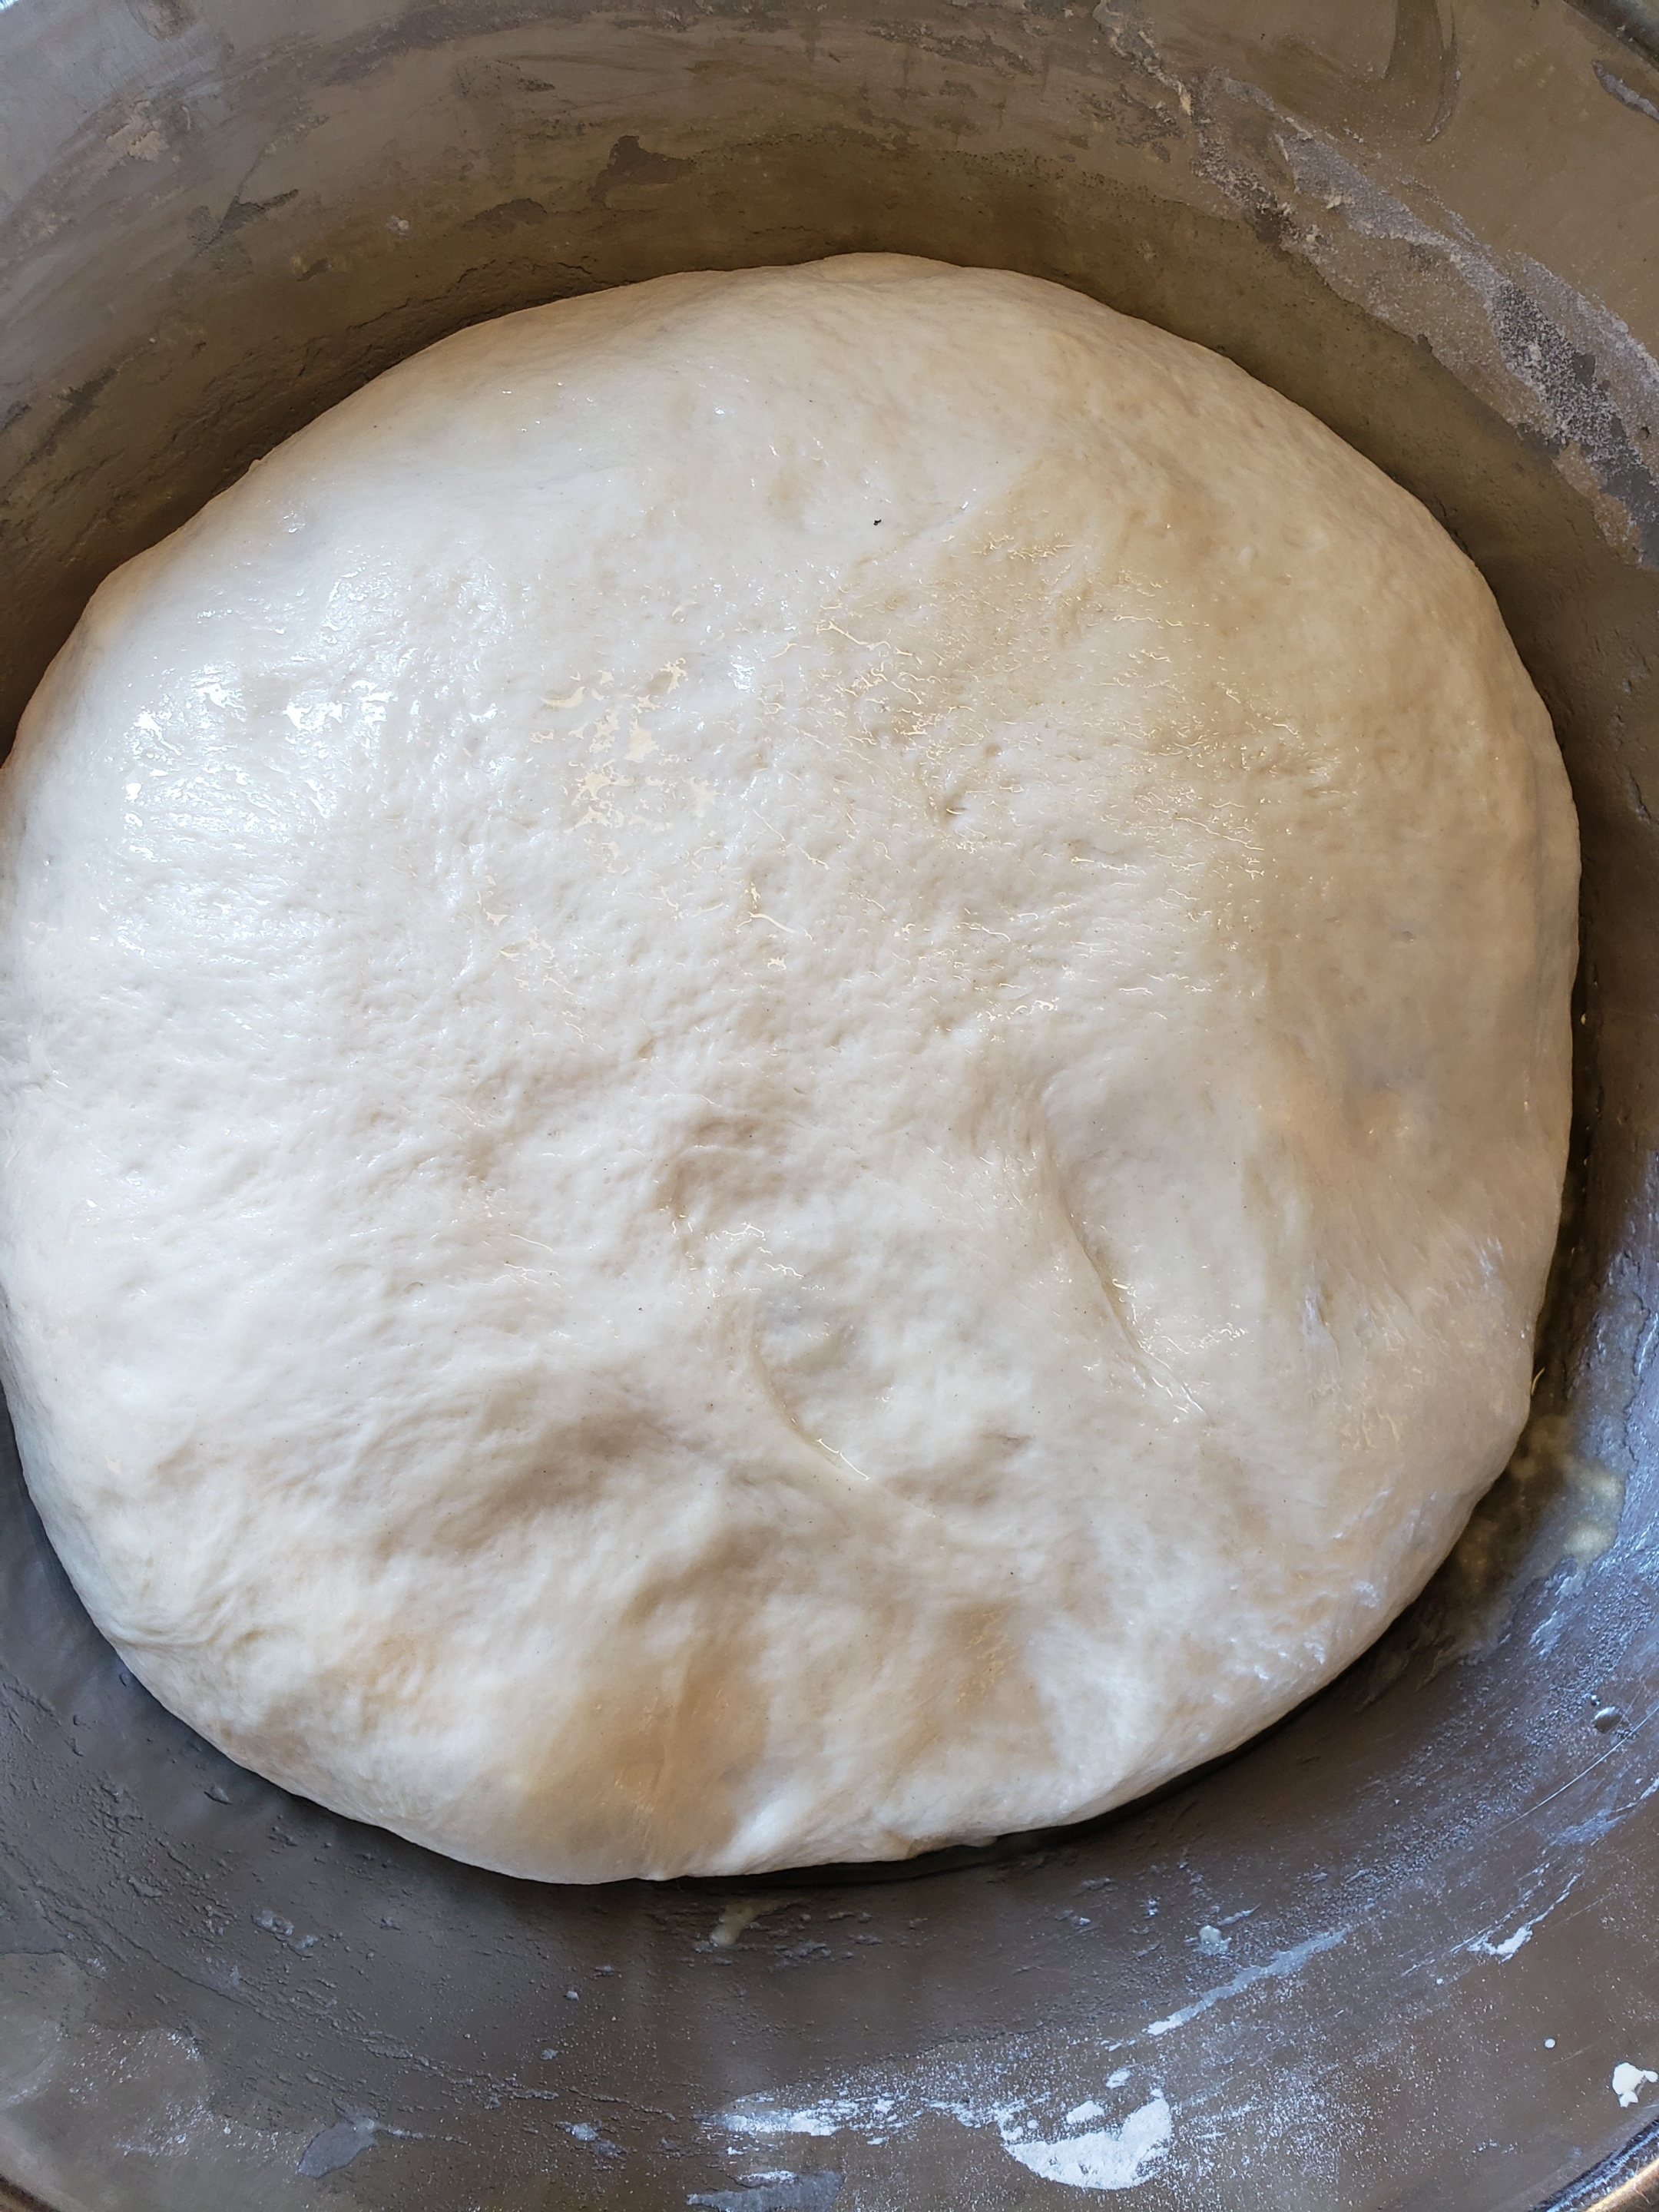 This is what your dough will look like after a slow proof.